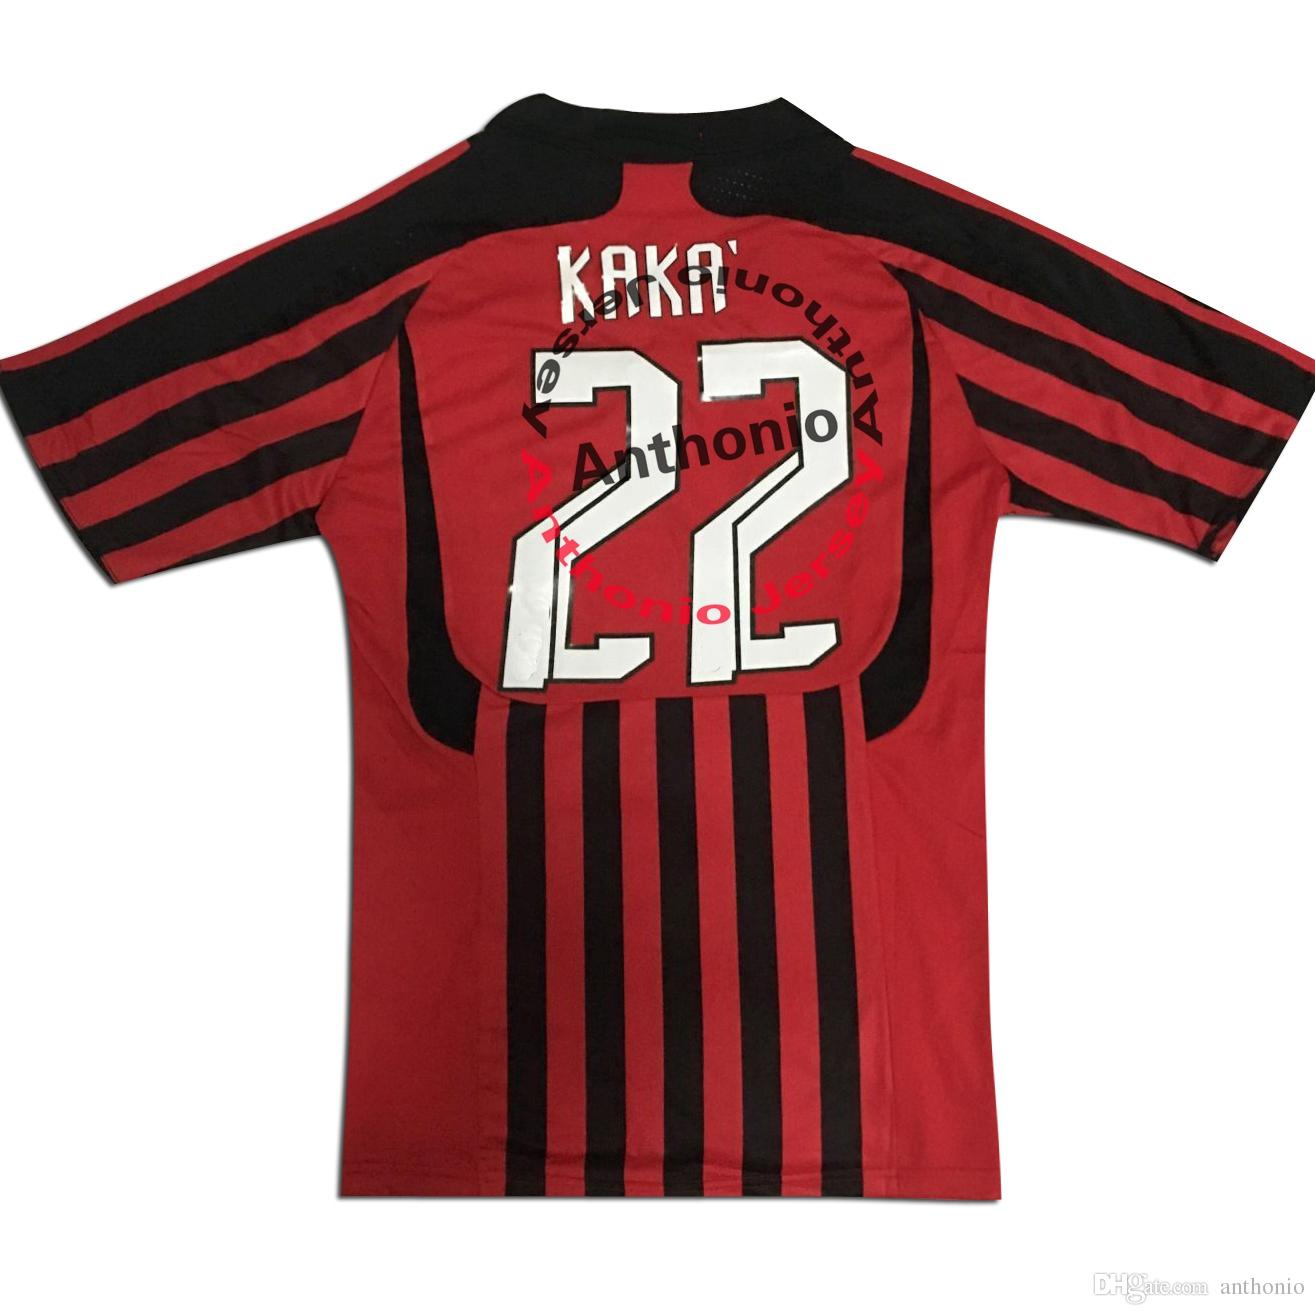 2007/08 RETRO VINTAGE CLASSIC KAKA 22 MALDINI 3 MAILLOT DE FOOT soccer uniform kits soccer jerseys thailand quality football shirts kit